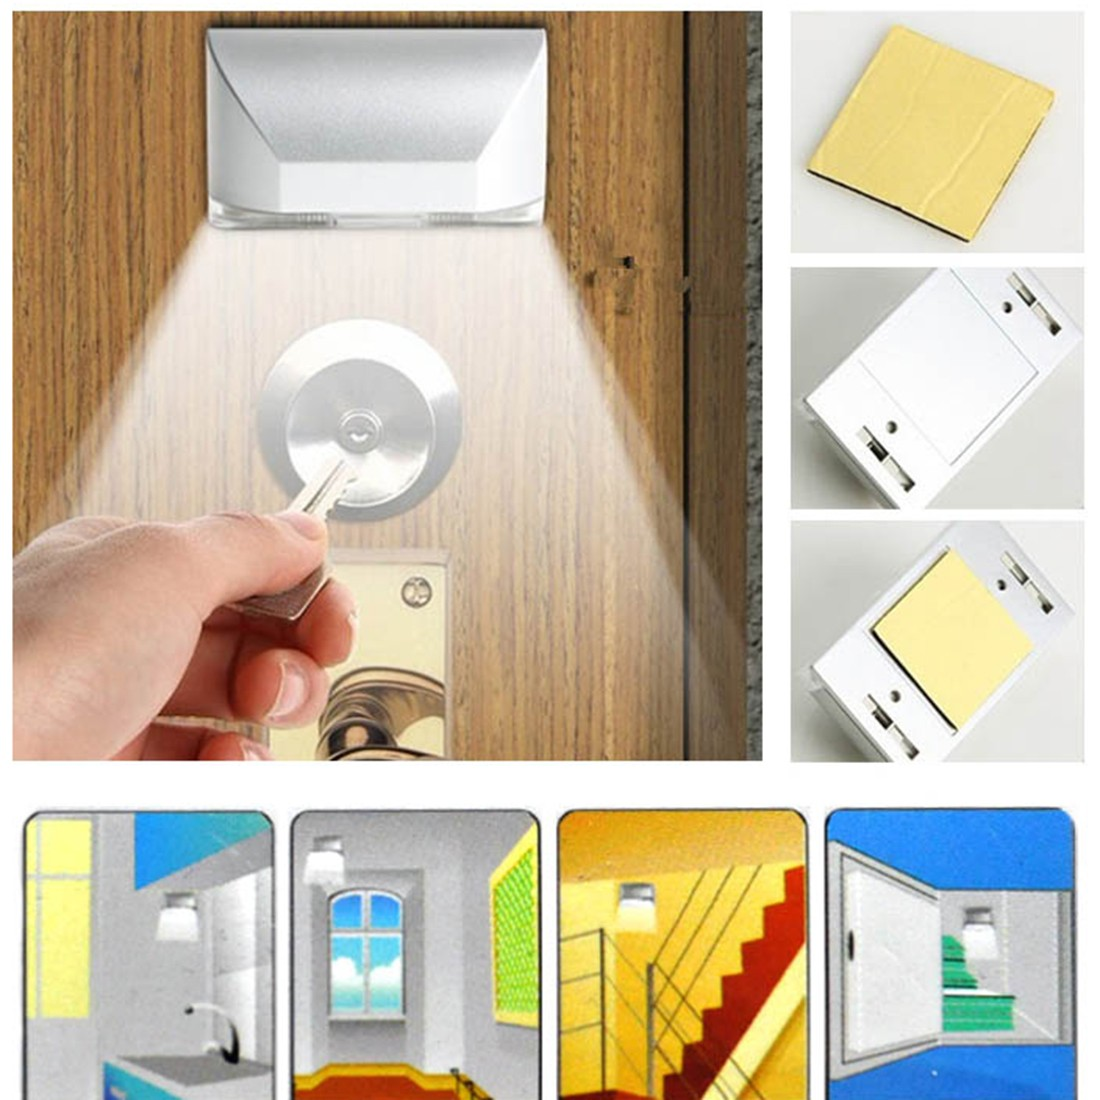 1Pcs Wireless Auto Infrared Sensor Motion Detector Keyhole 4 LED Light lamp Night Lights Motion Light Ambient Light Sensor